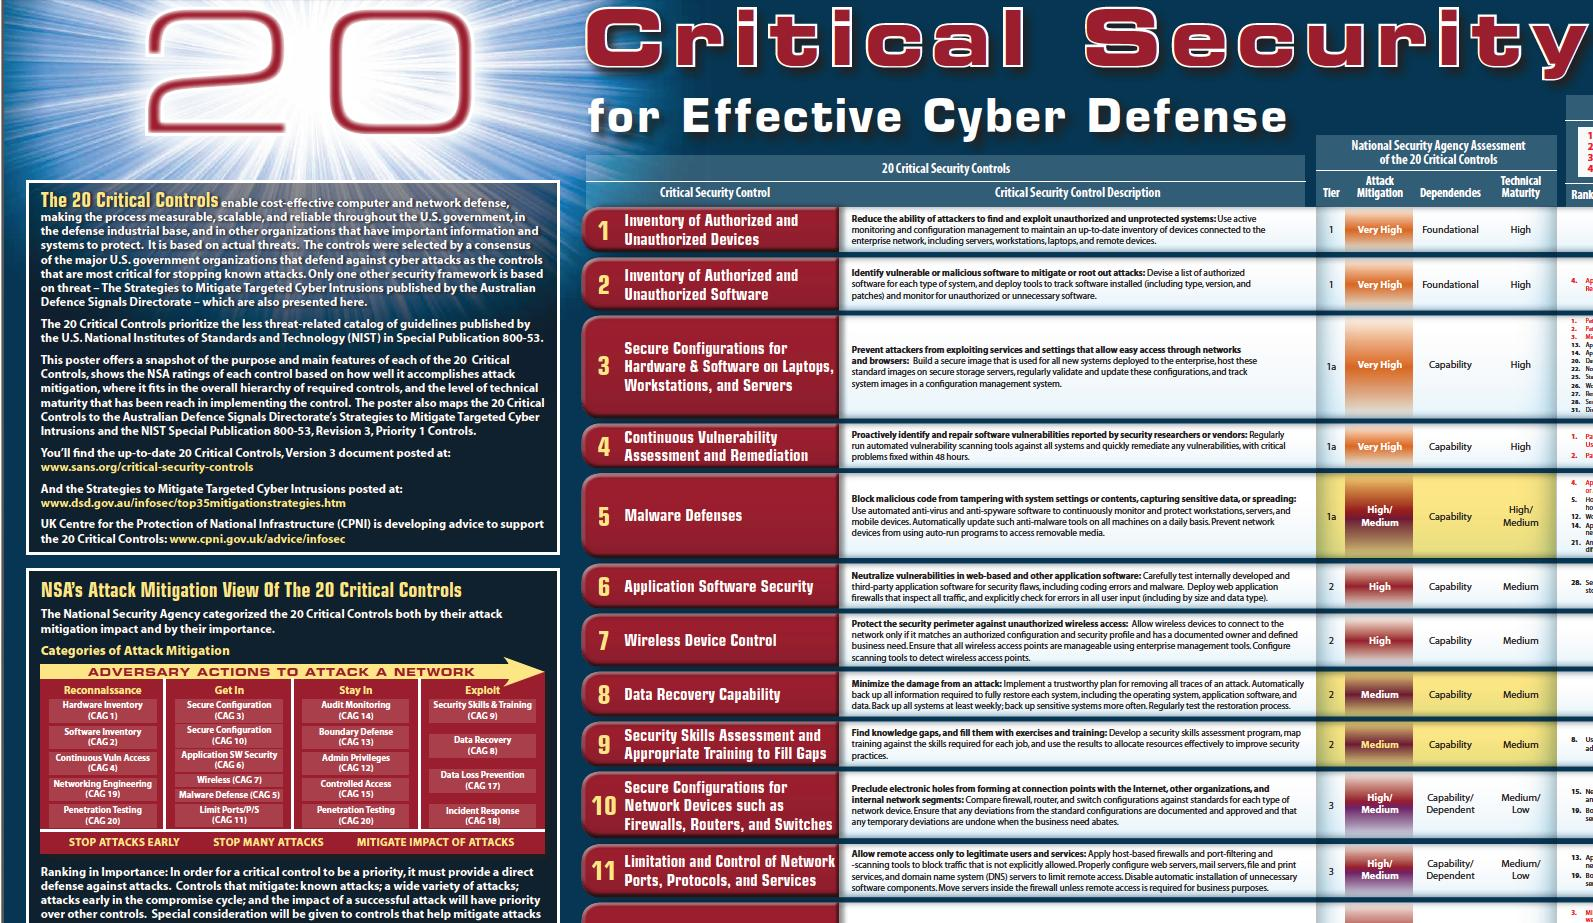 Twenty Critical Security Controls for Effective Cyber Defense